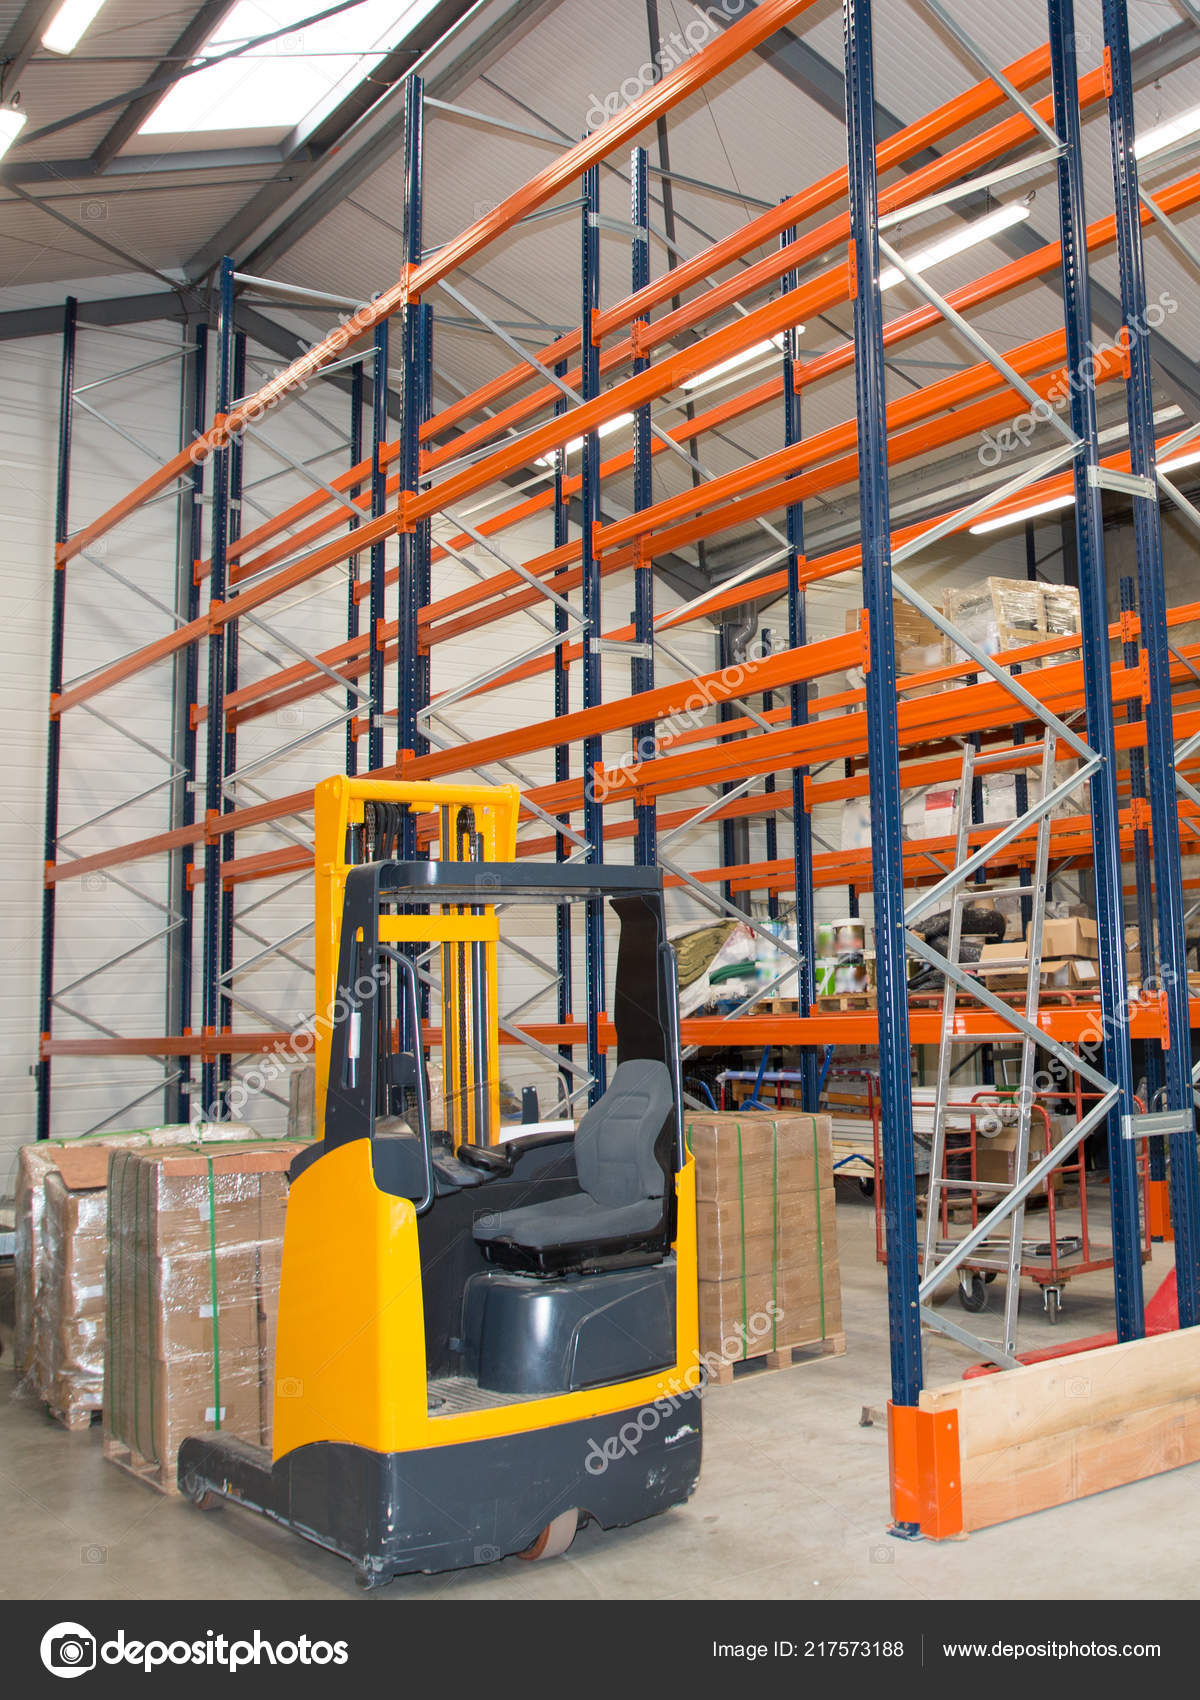 Forklift Loading Pallet Transport Business Delivery Shelves